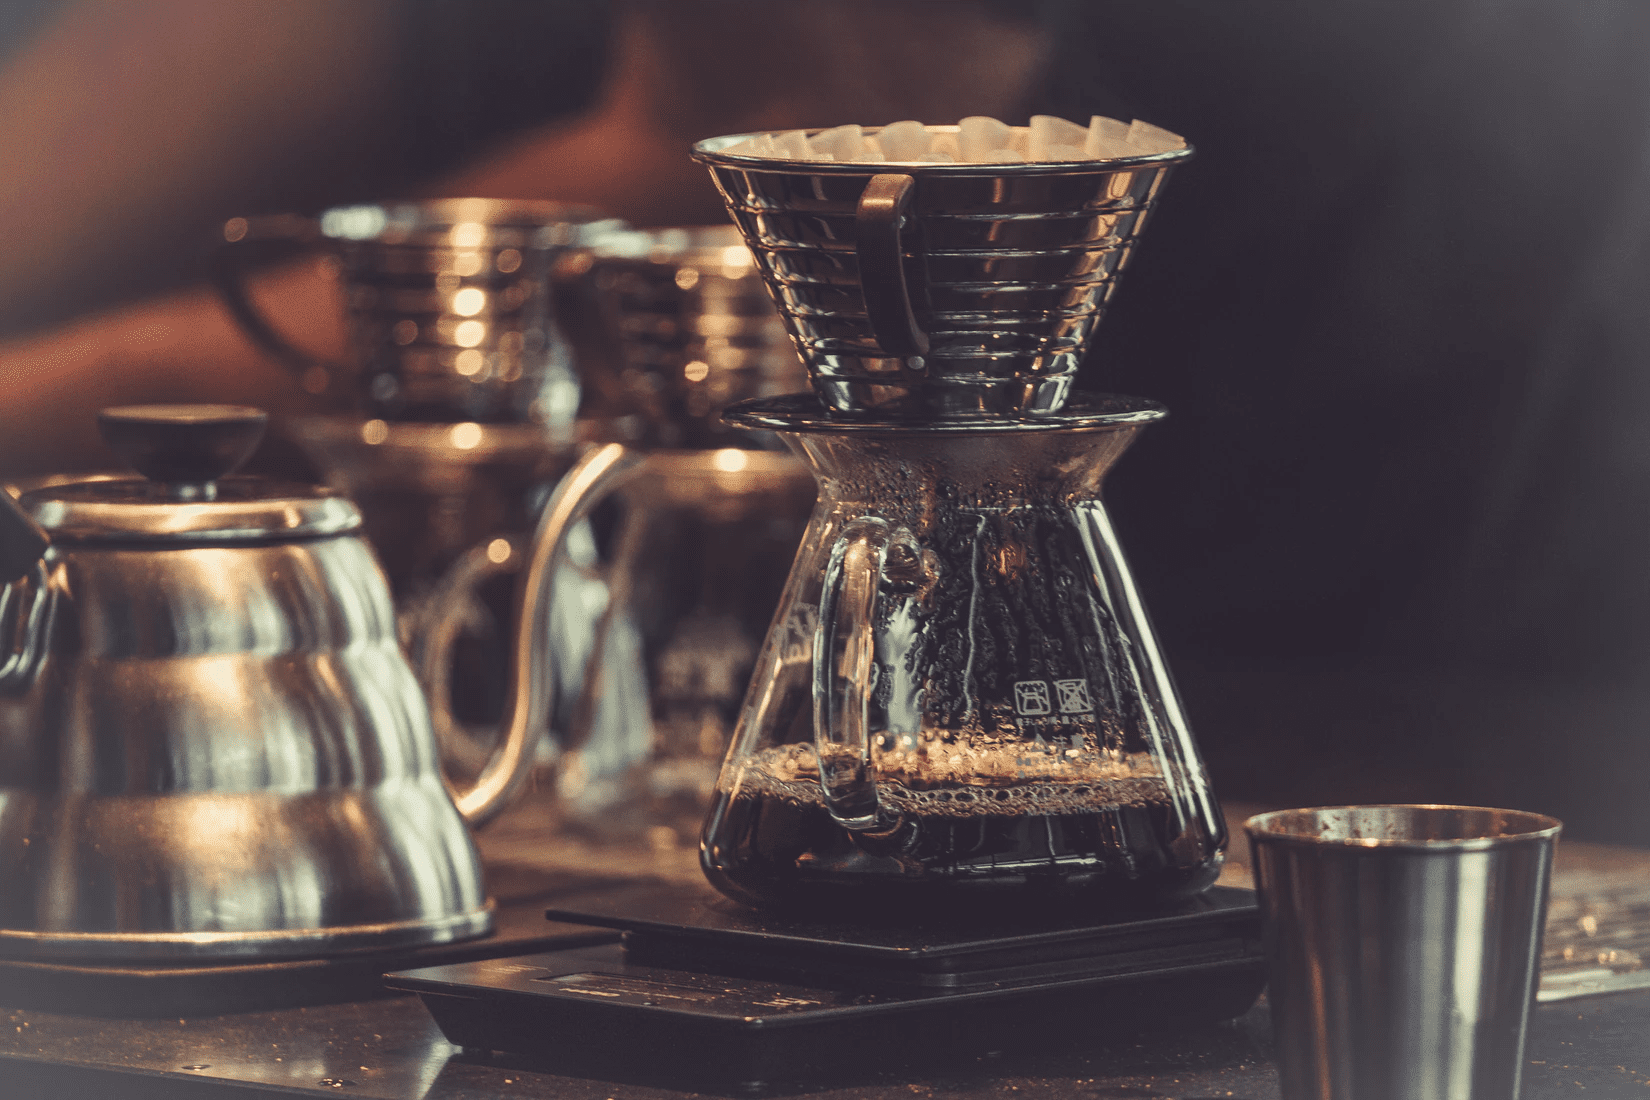 a v60 being used to brew a great clean coffee